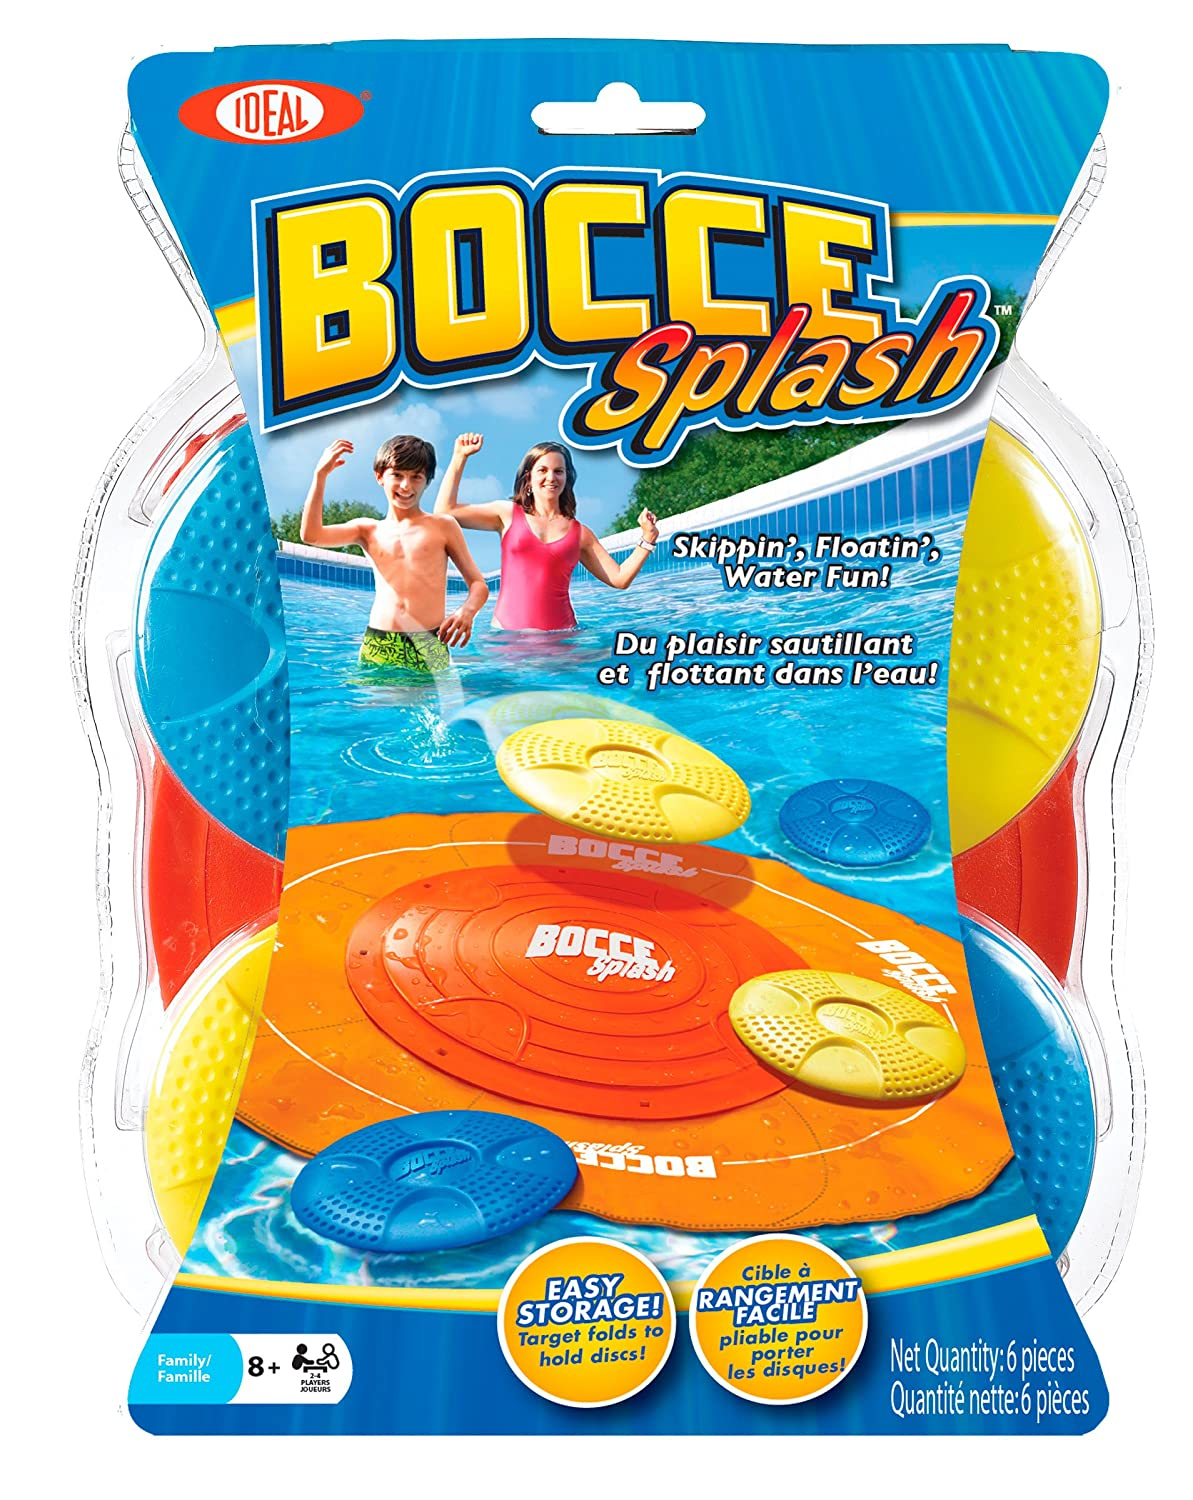 Top 5 Best Swimming Pool Games Reviews 2019-2020 - cover